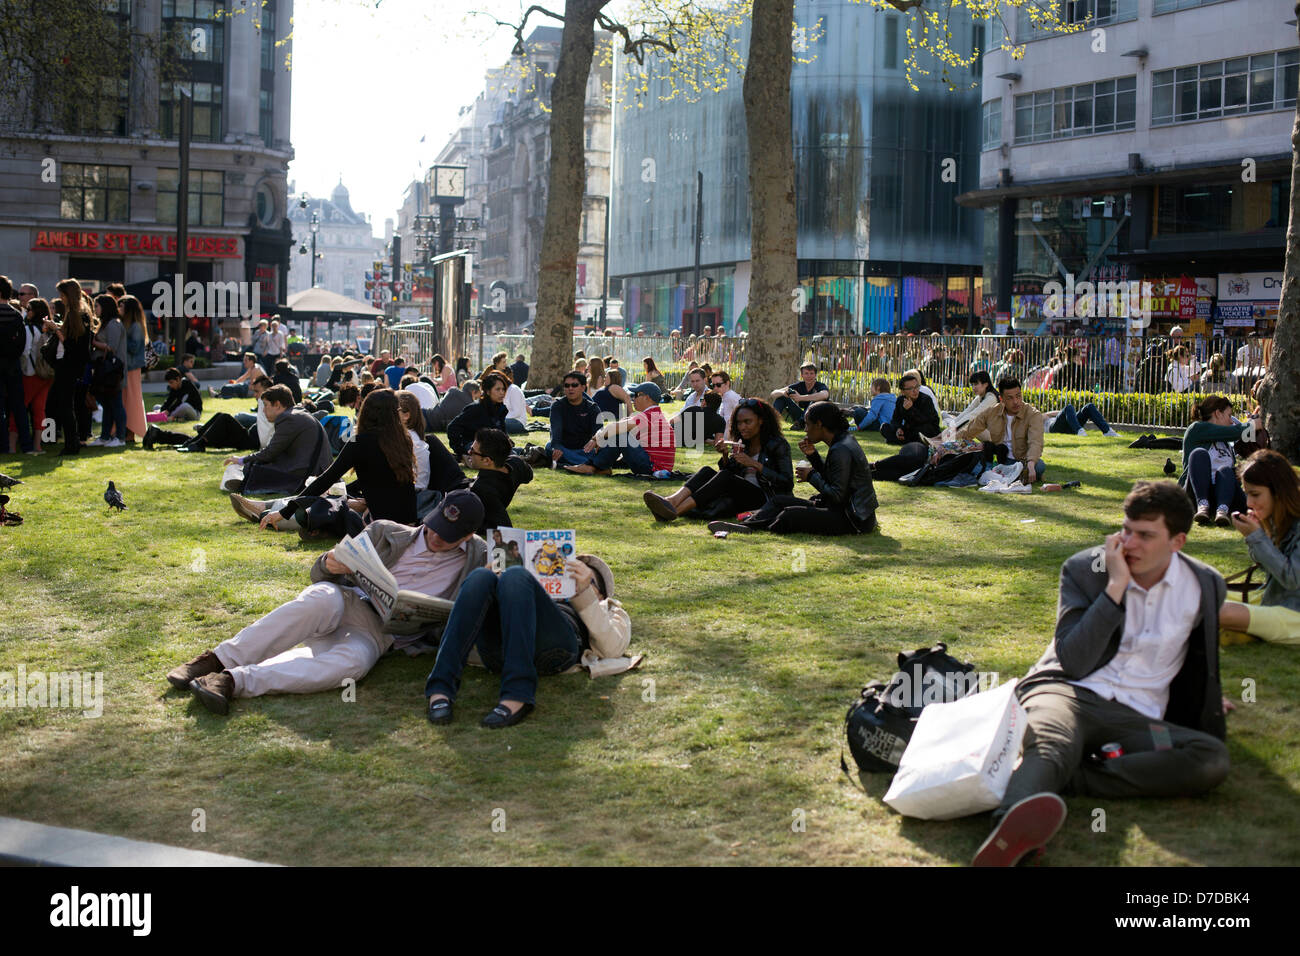 Leicester Square, London England people relaxing on grass - Stock Image